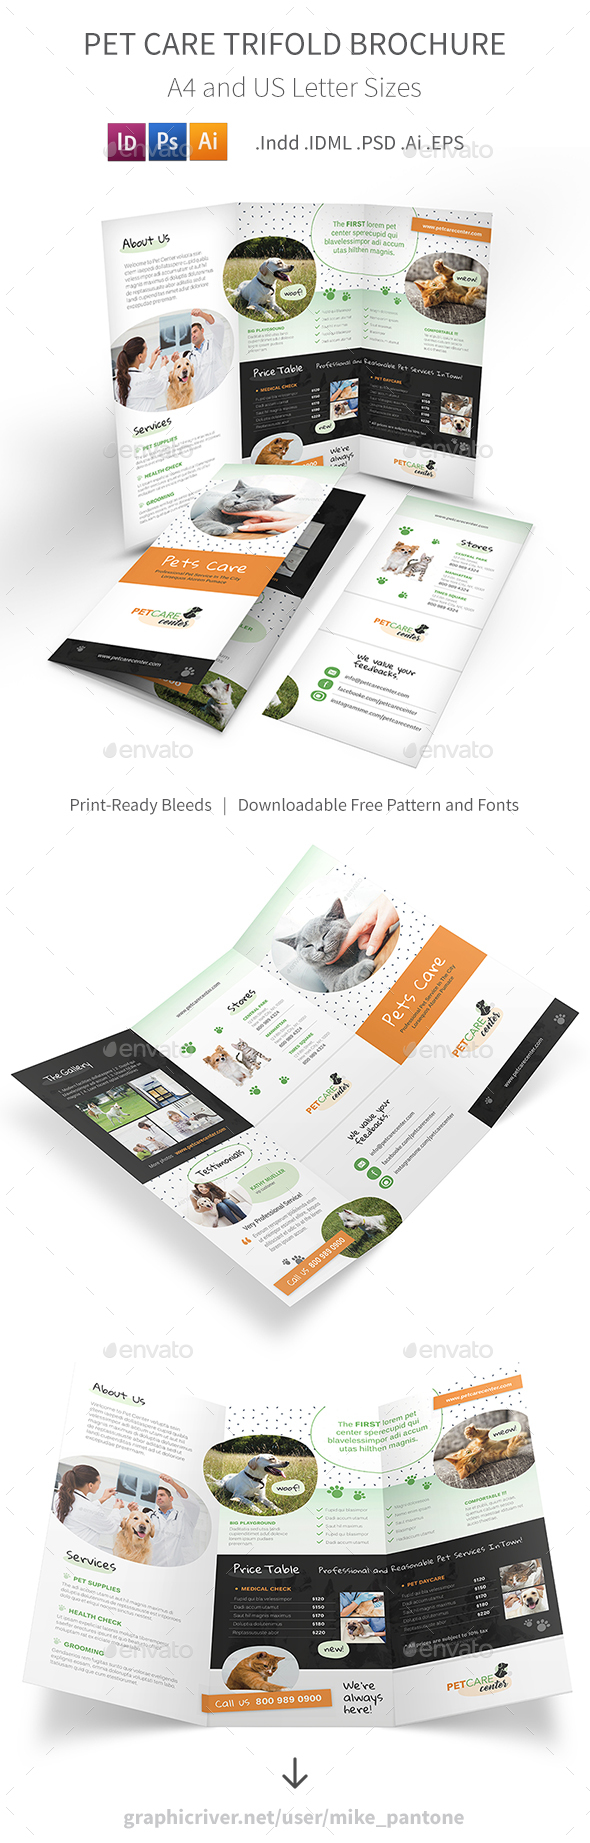 Pet Care Trifold Brochure Template Psd Vector Eps Indesign Indd